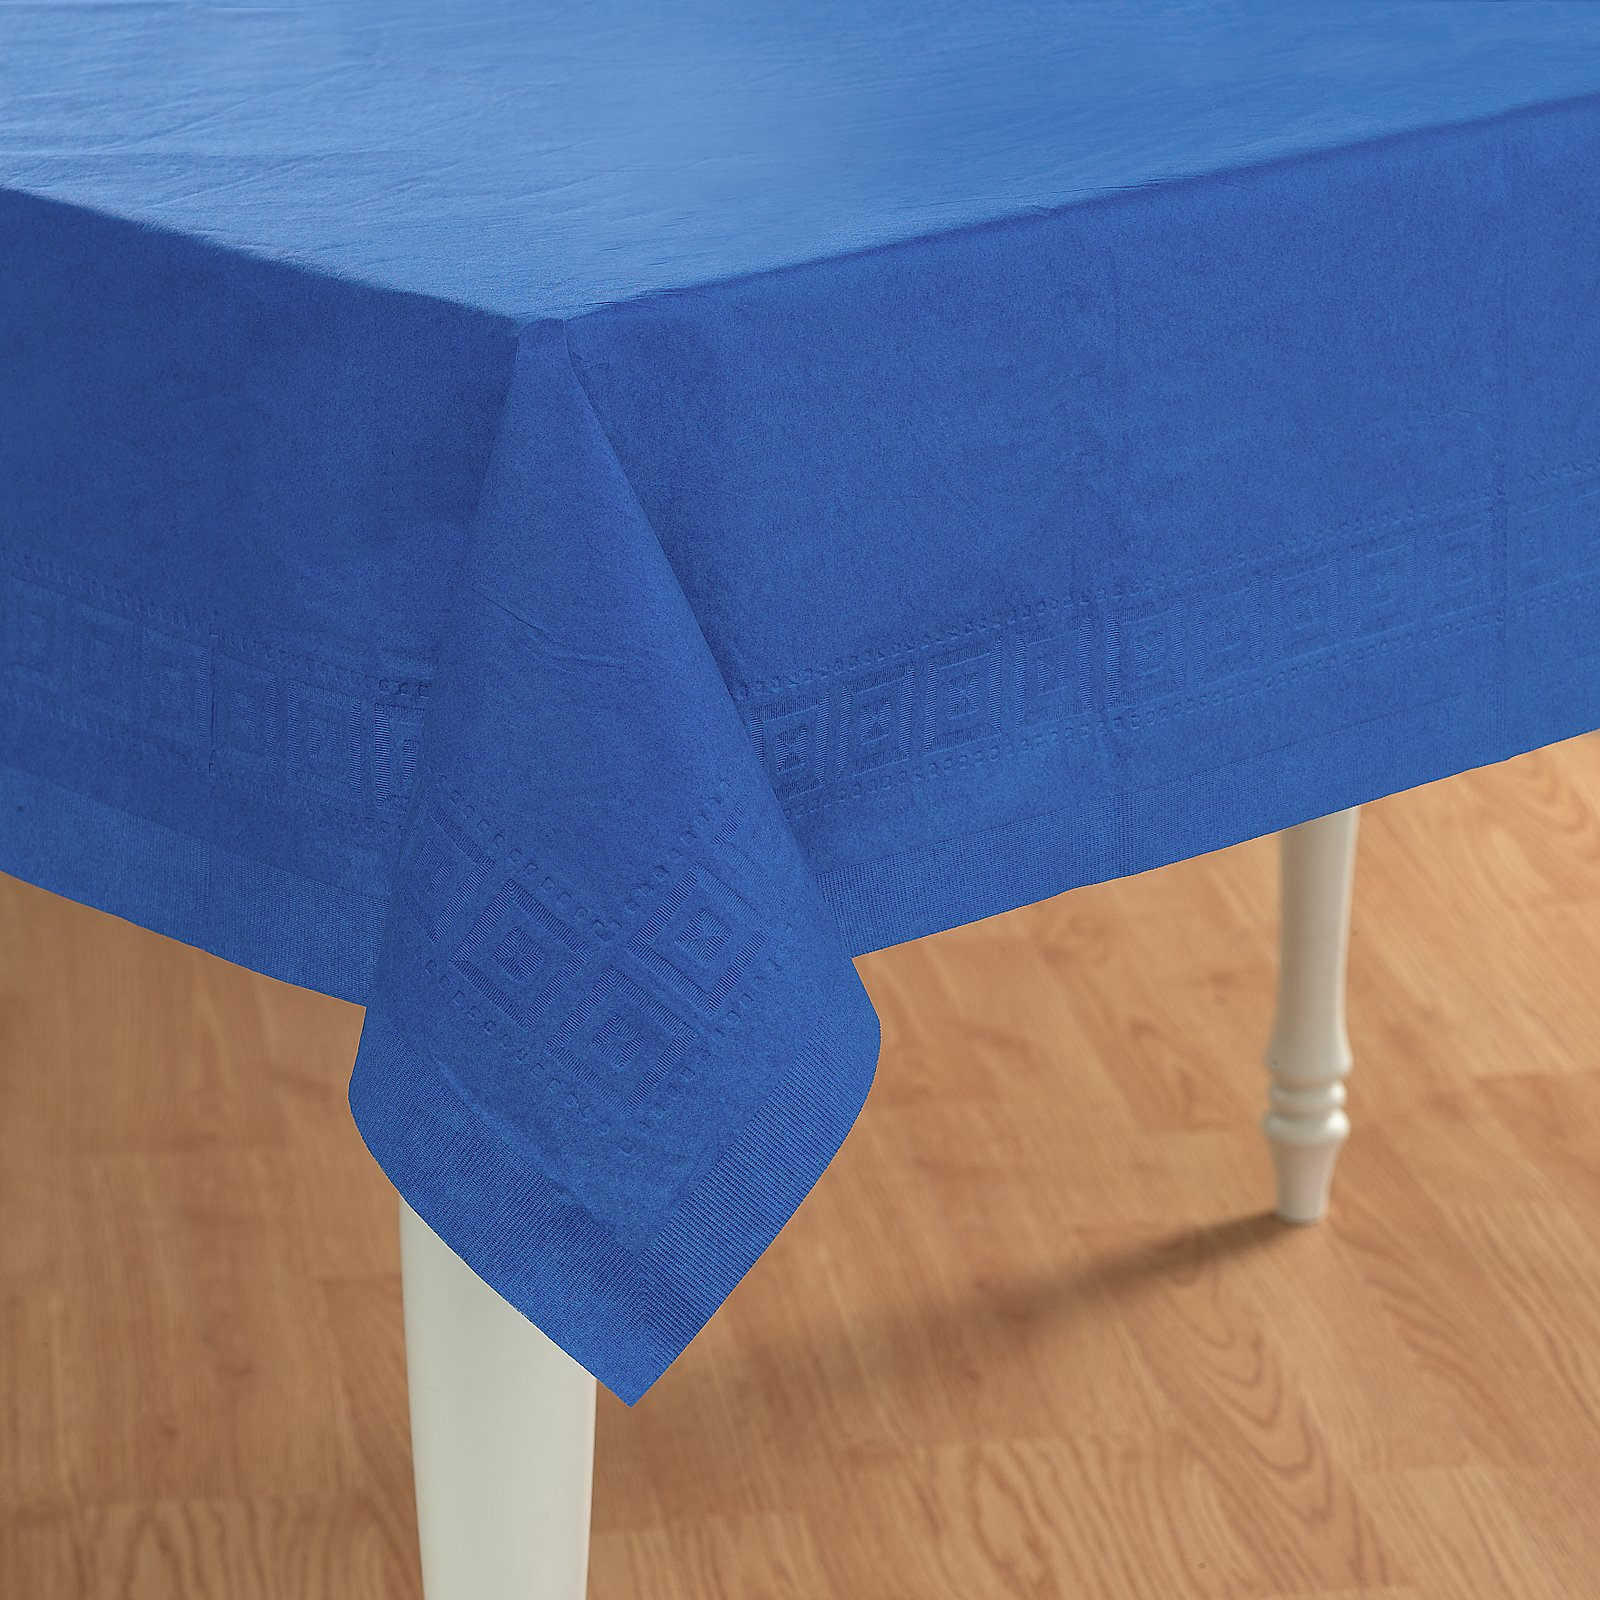 True Blue (Blue) Paper Tablecover